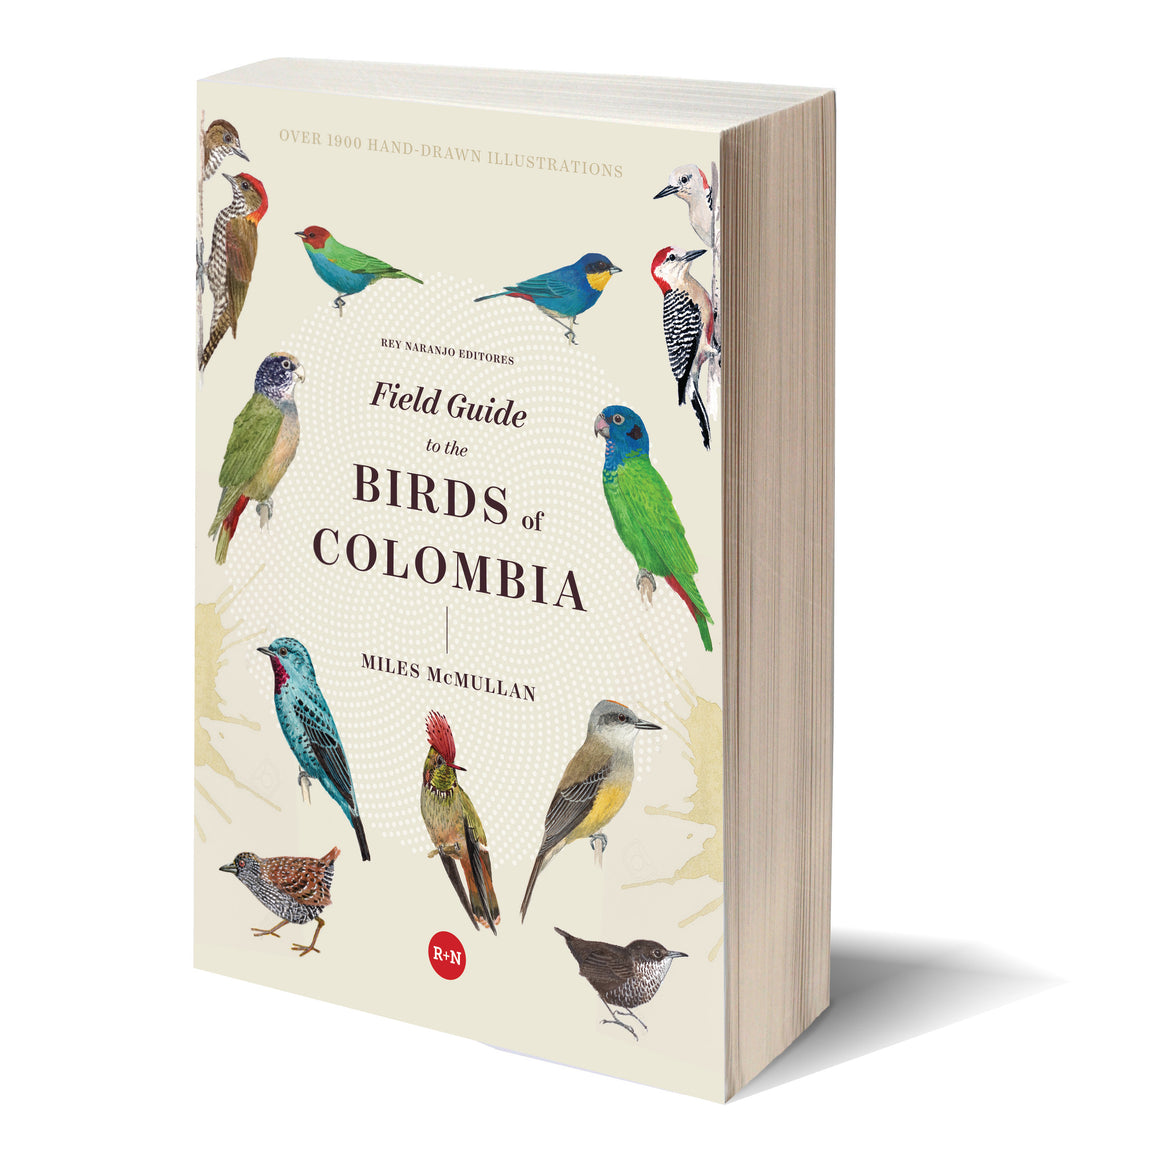 Field Guide to the Birds of Colombia, Third Edition. Pre-Order Now